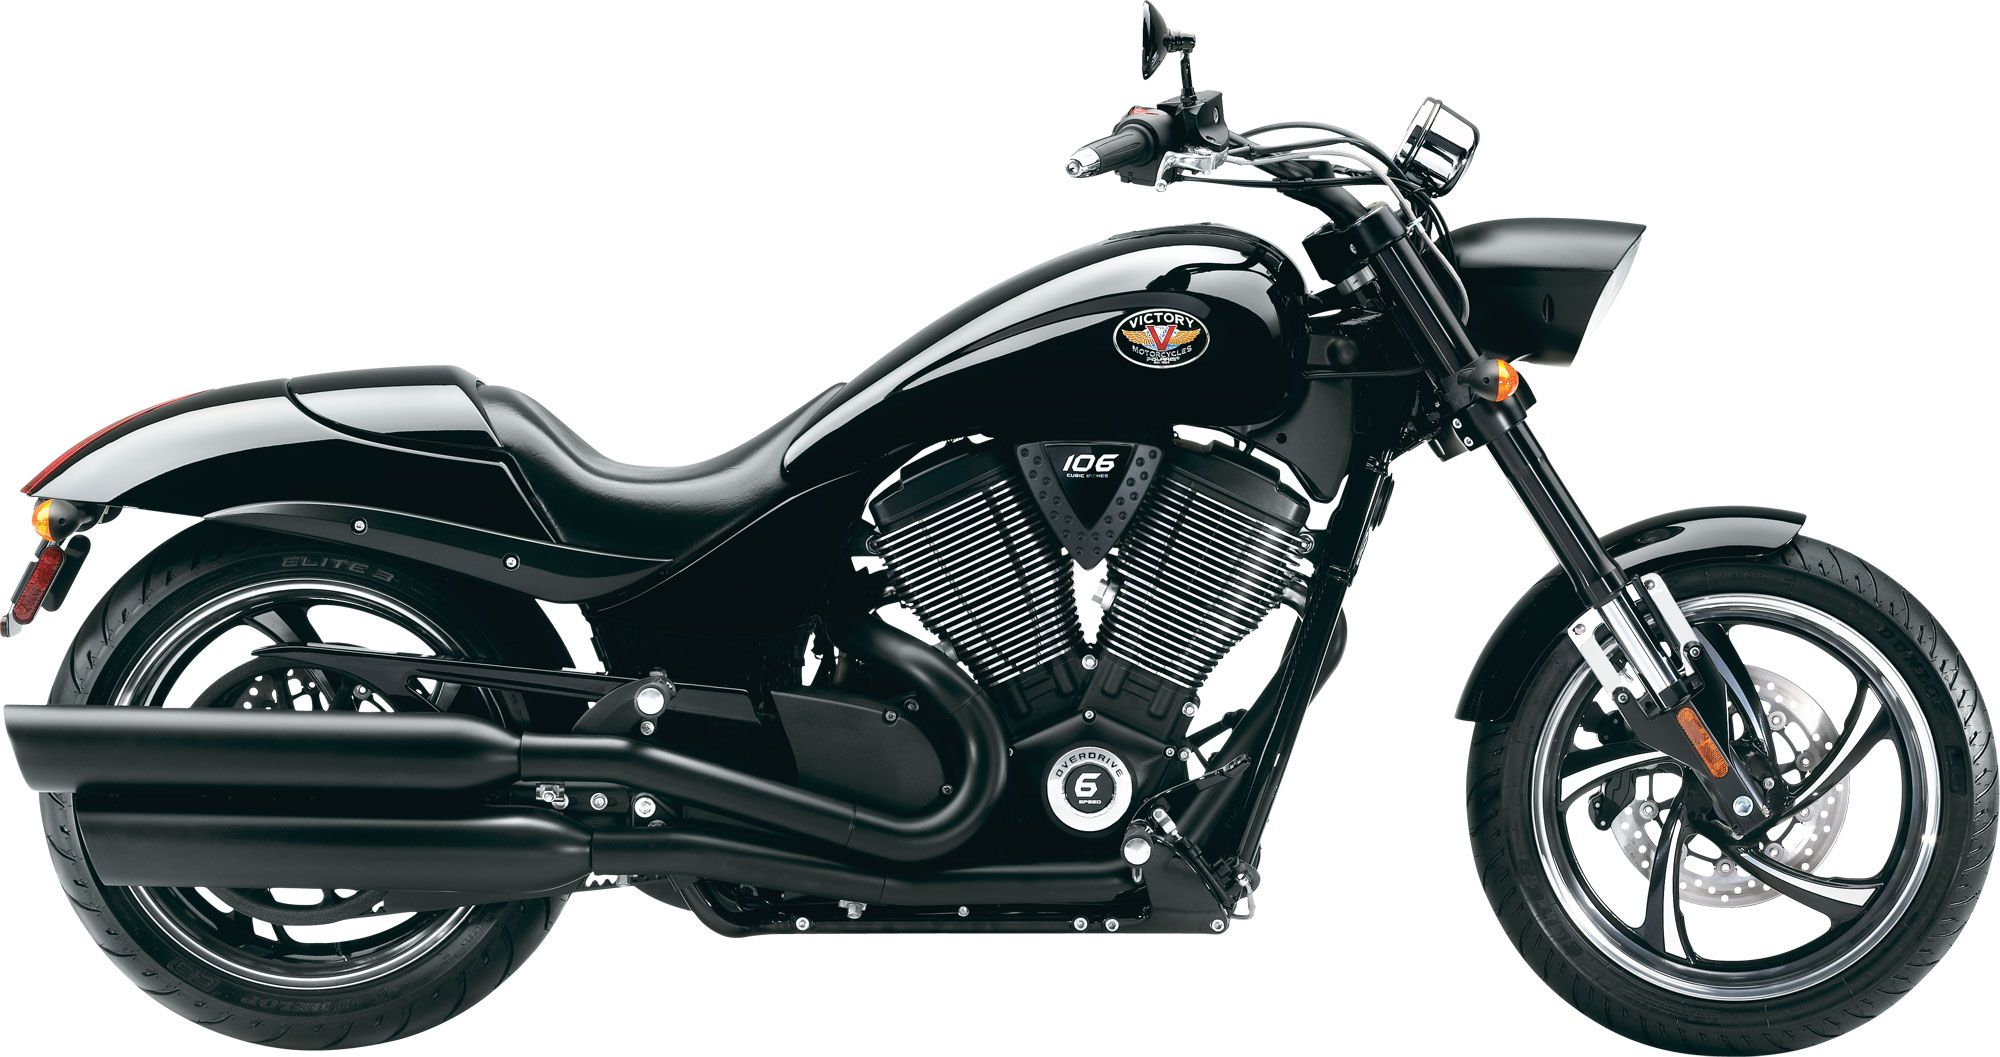 2011 Victory Hammer 8-Ball First Ride